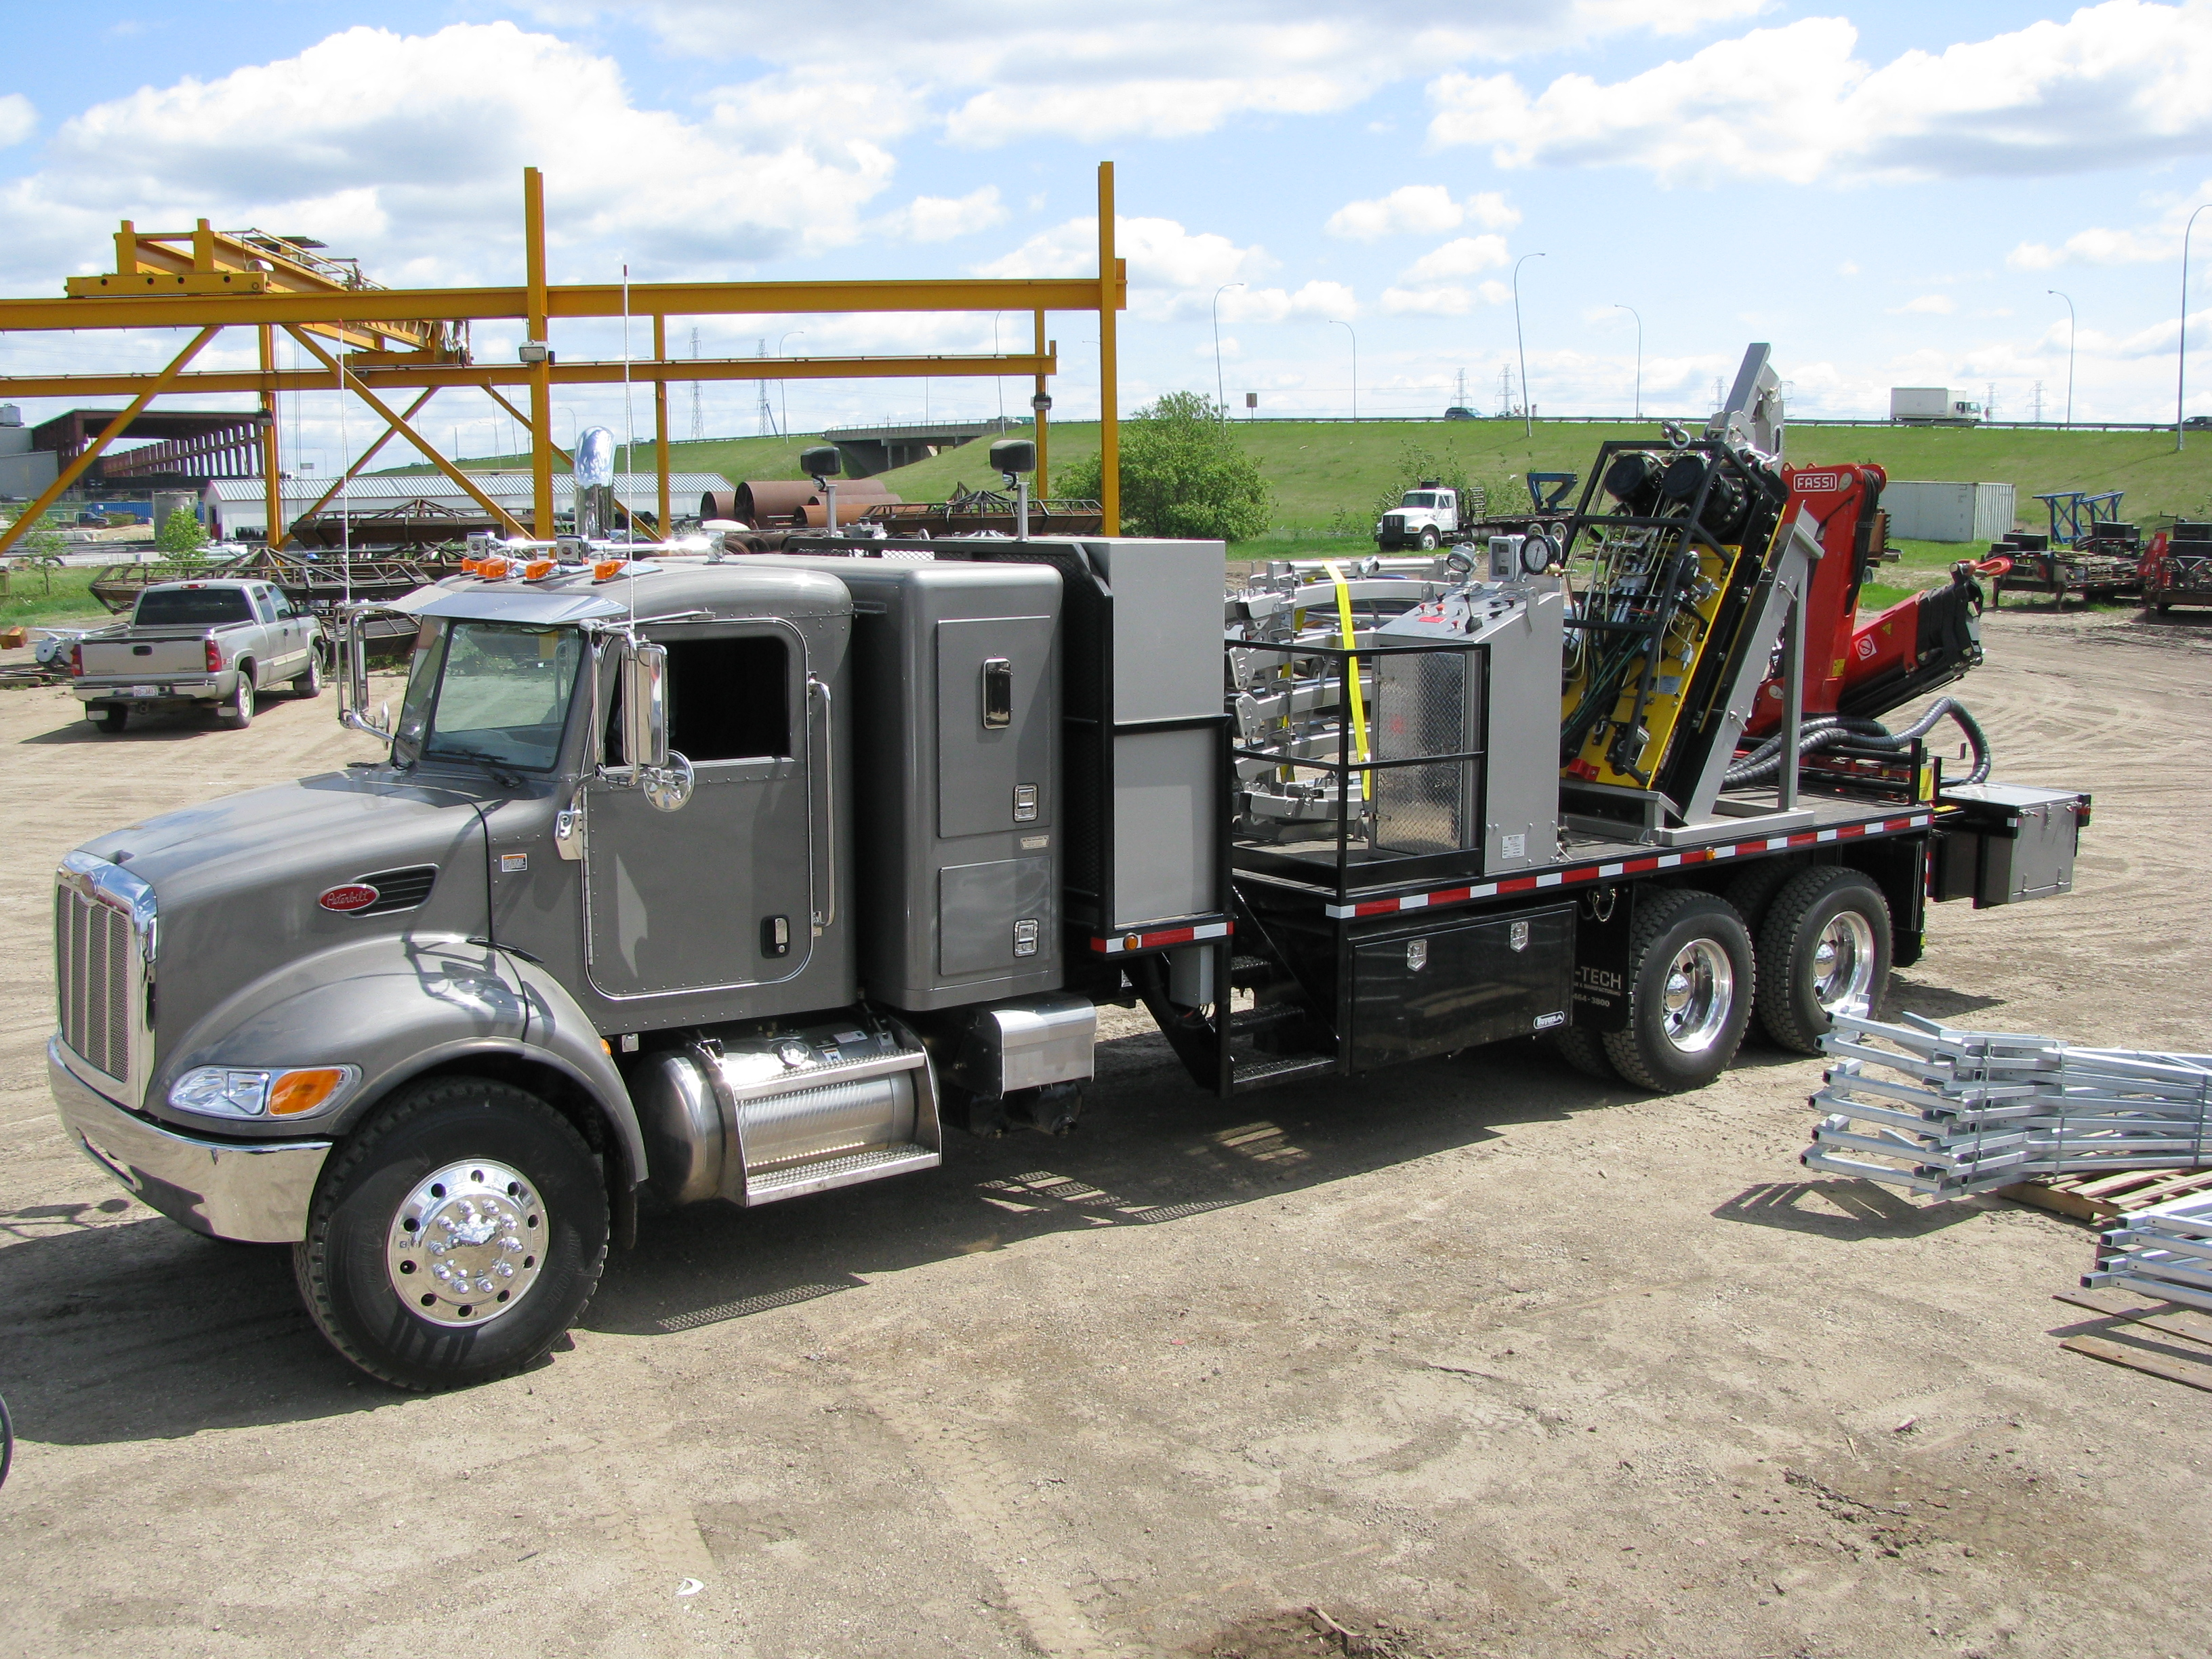 TMX Unit (Truck Mounted X-celerator)